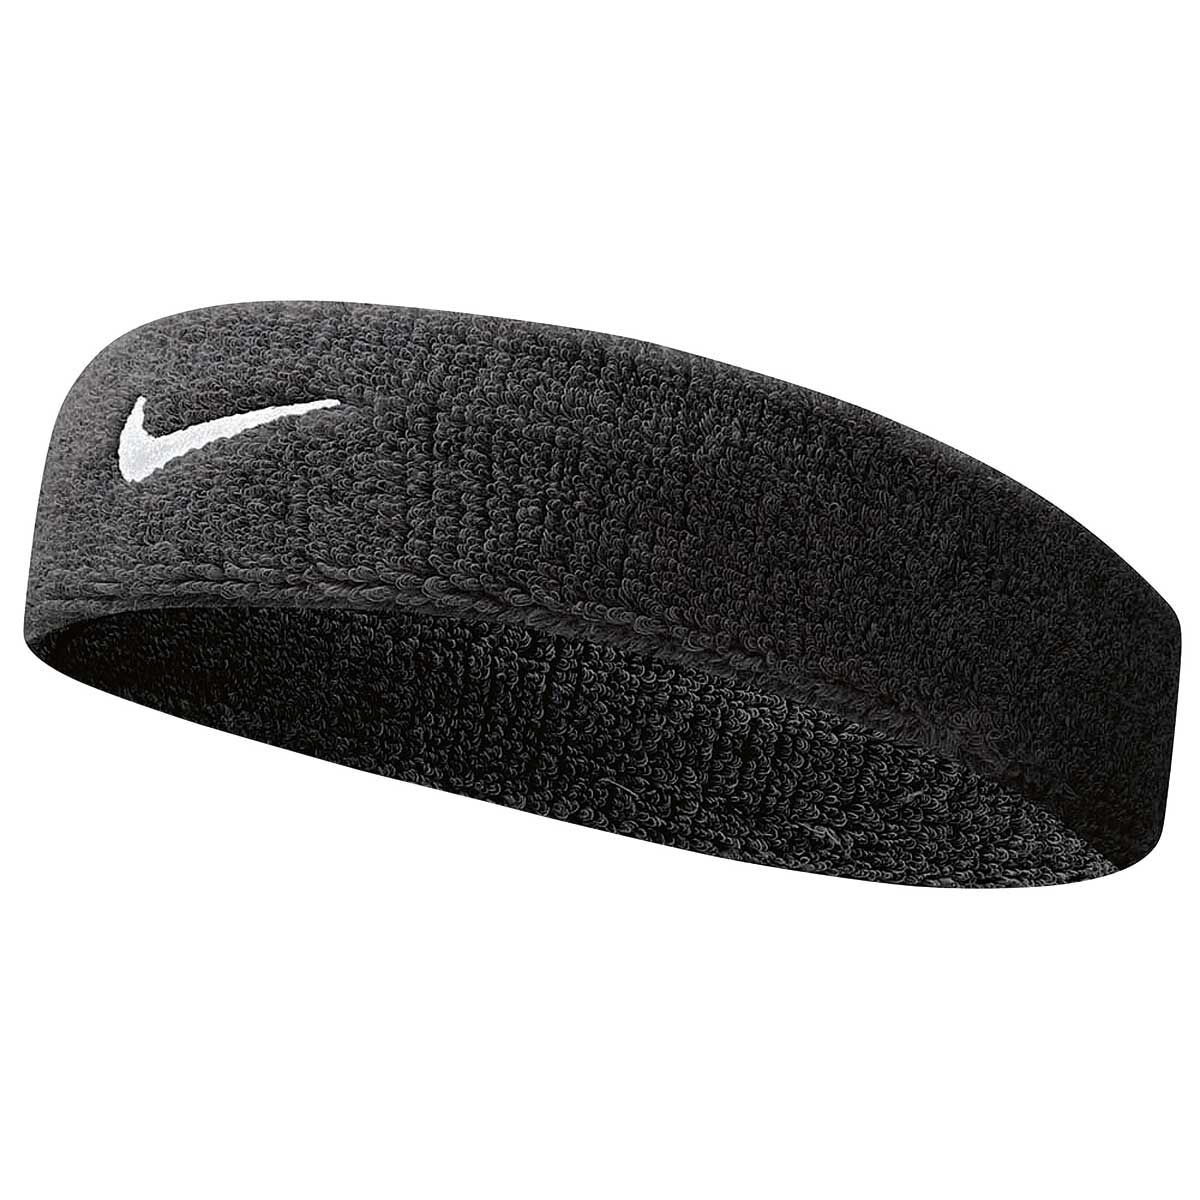 Black And White Nike Headbands